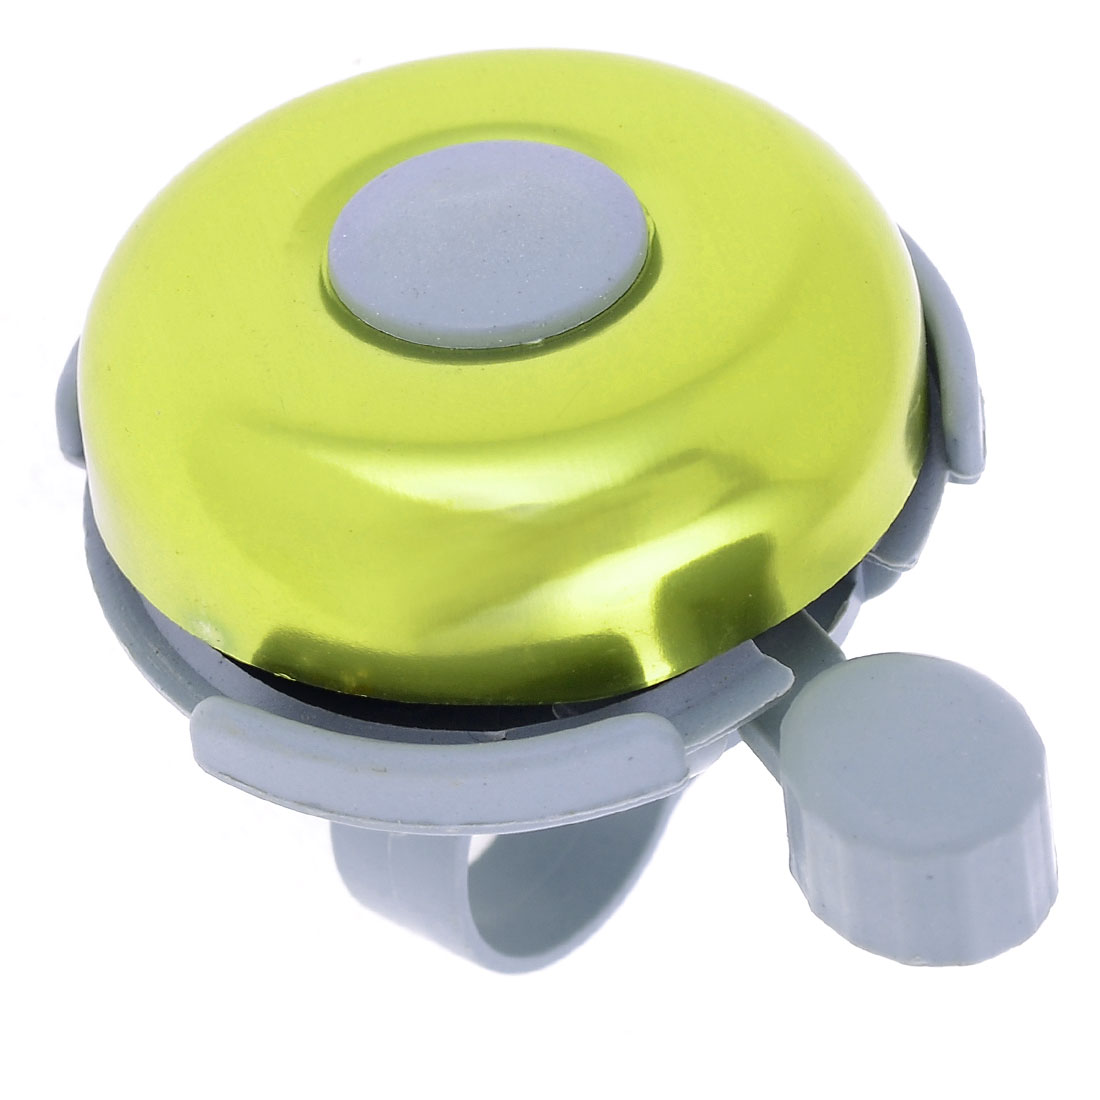 22mm Dia.Yellow Green Gray Round Shaped Alarm Bike Bicycle Bell